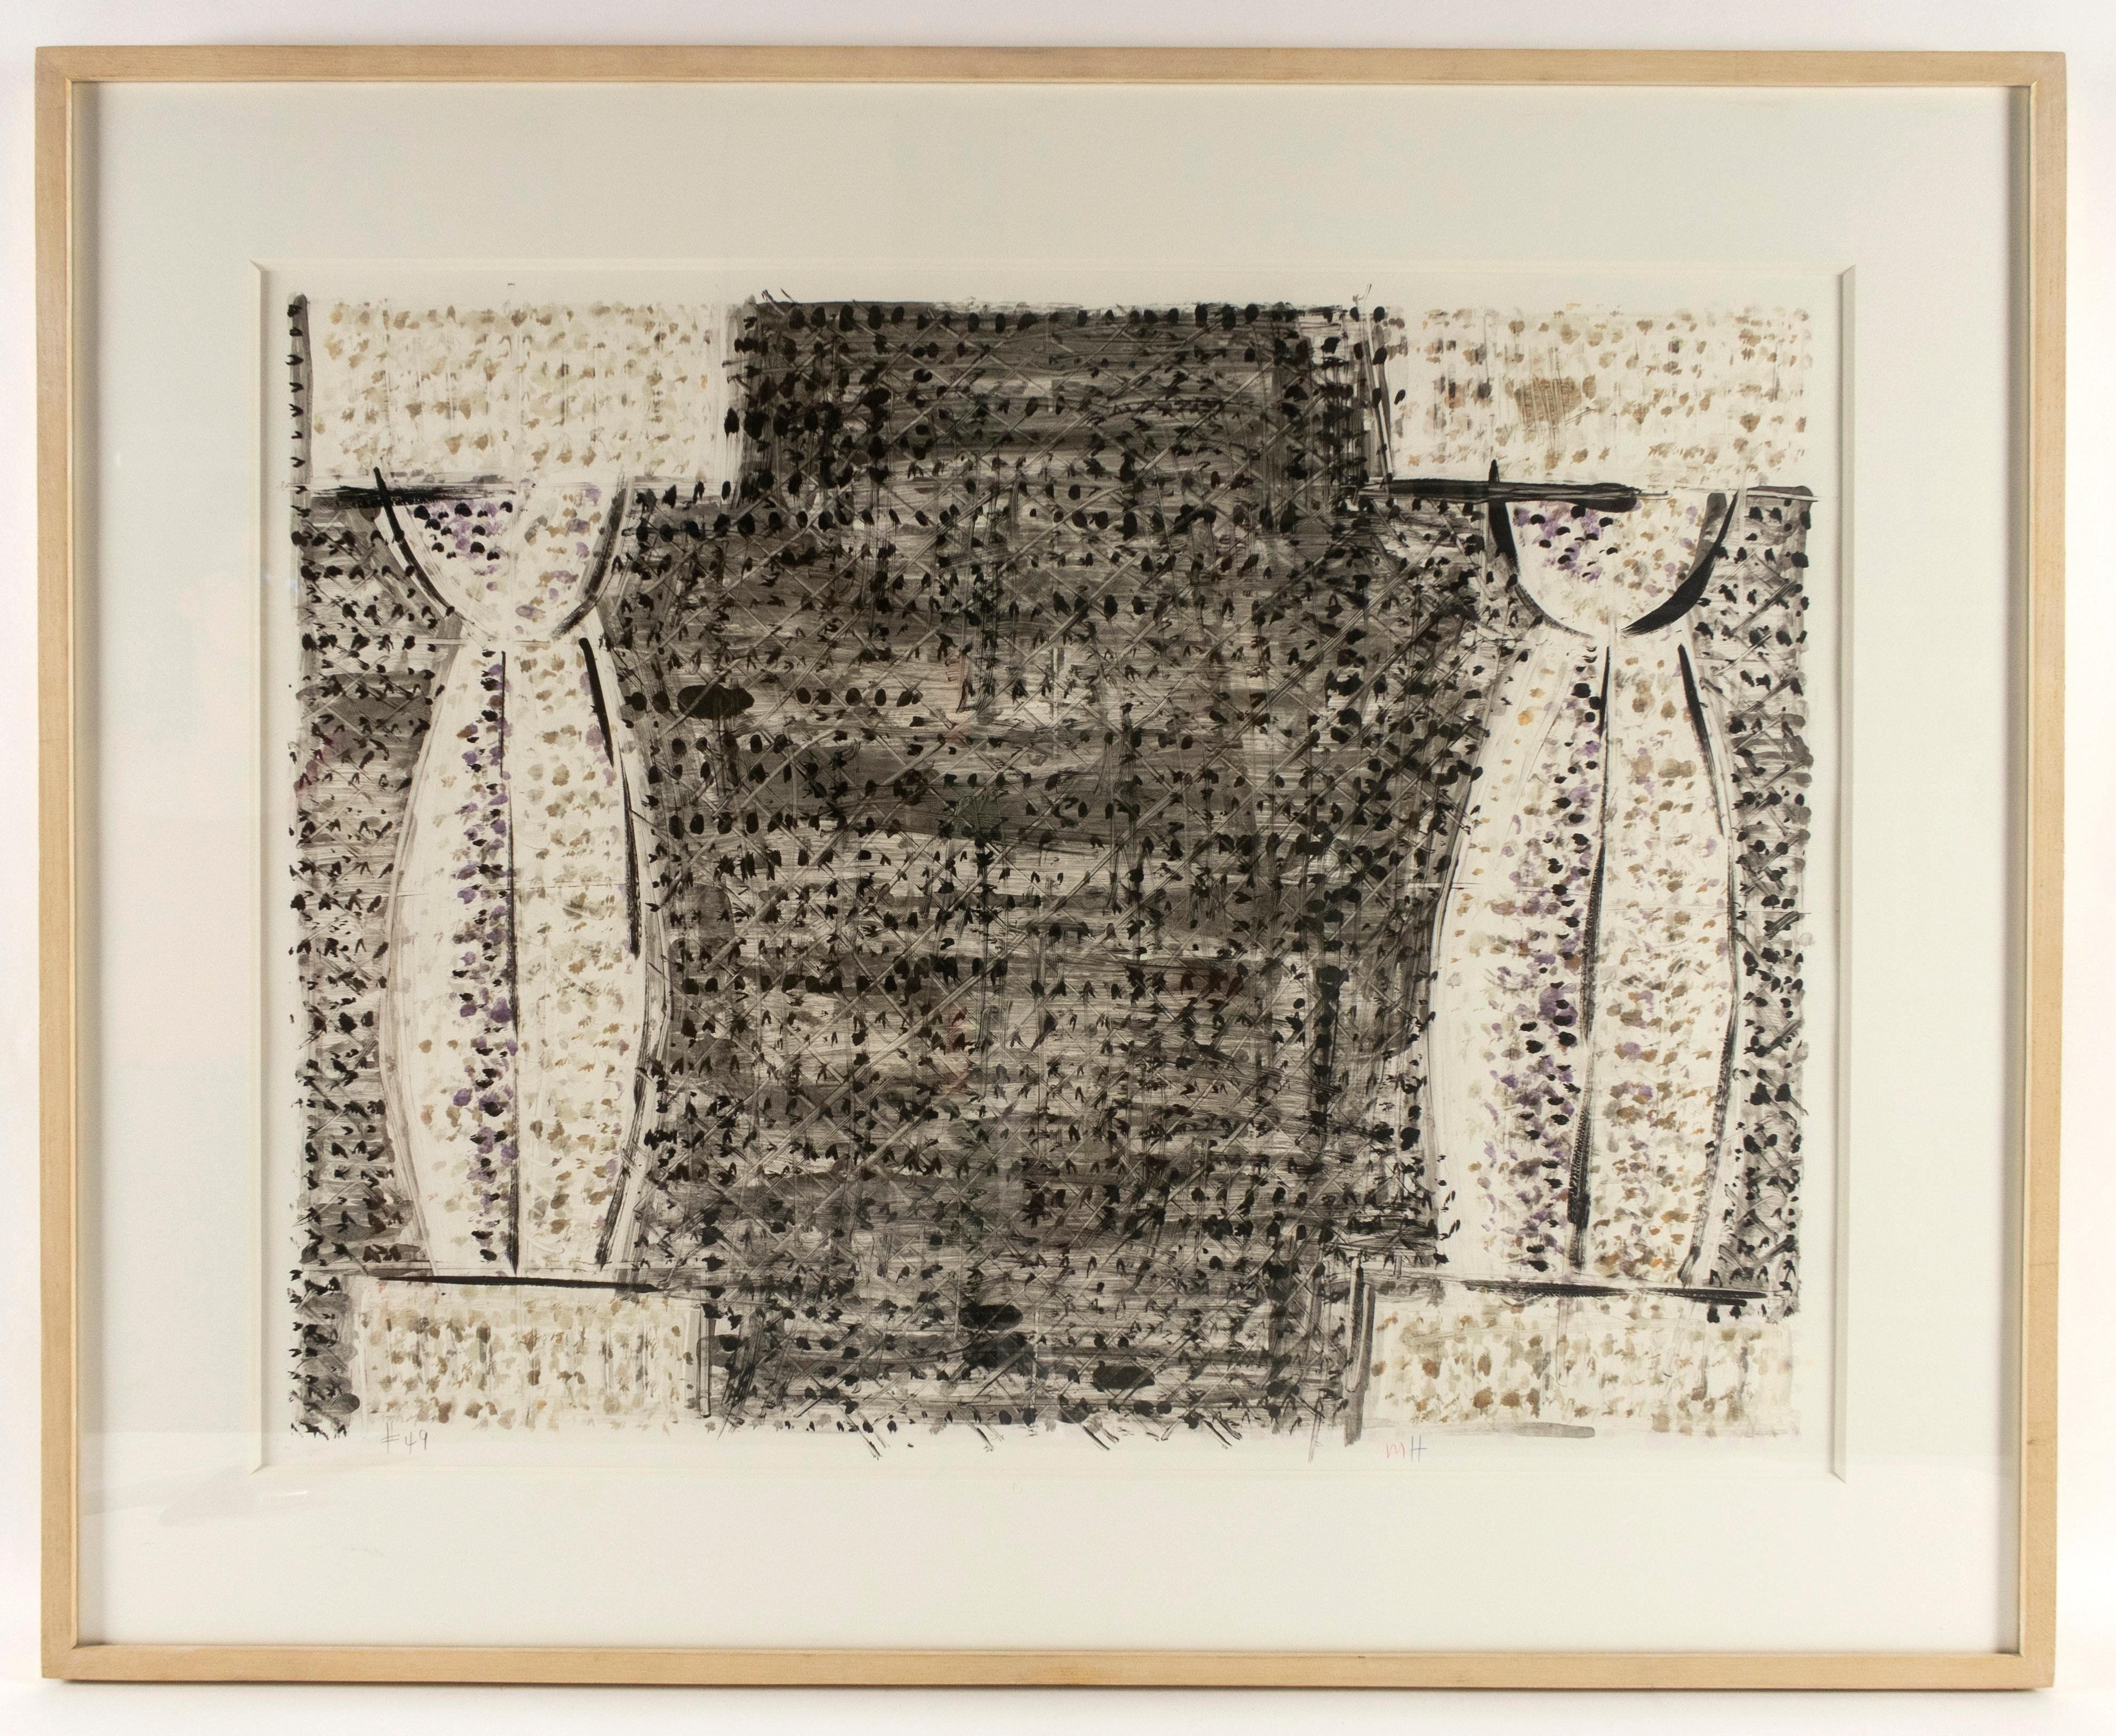 Two Columns by Michael Hurson framed abstract with greco roman pillars on stage